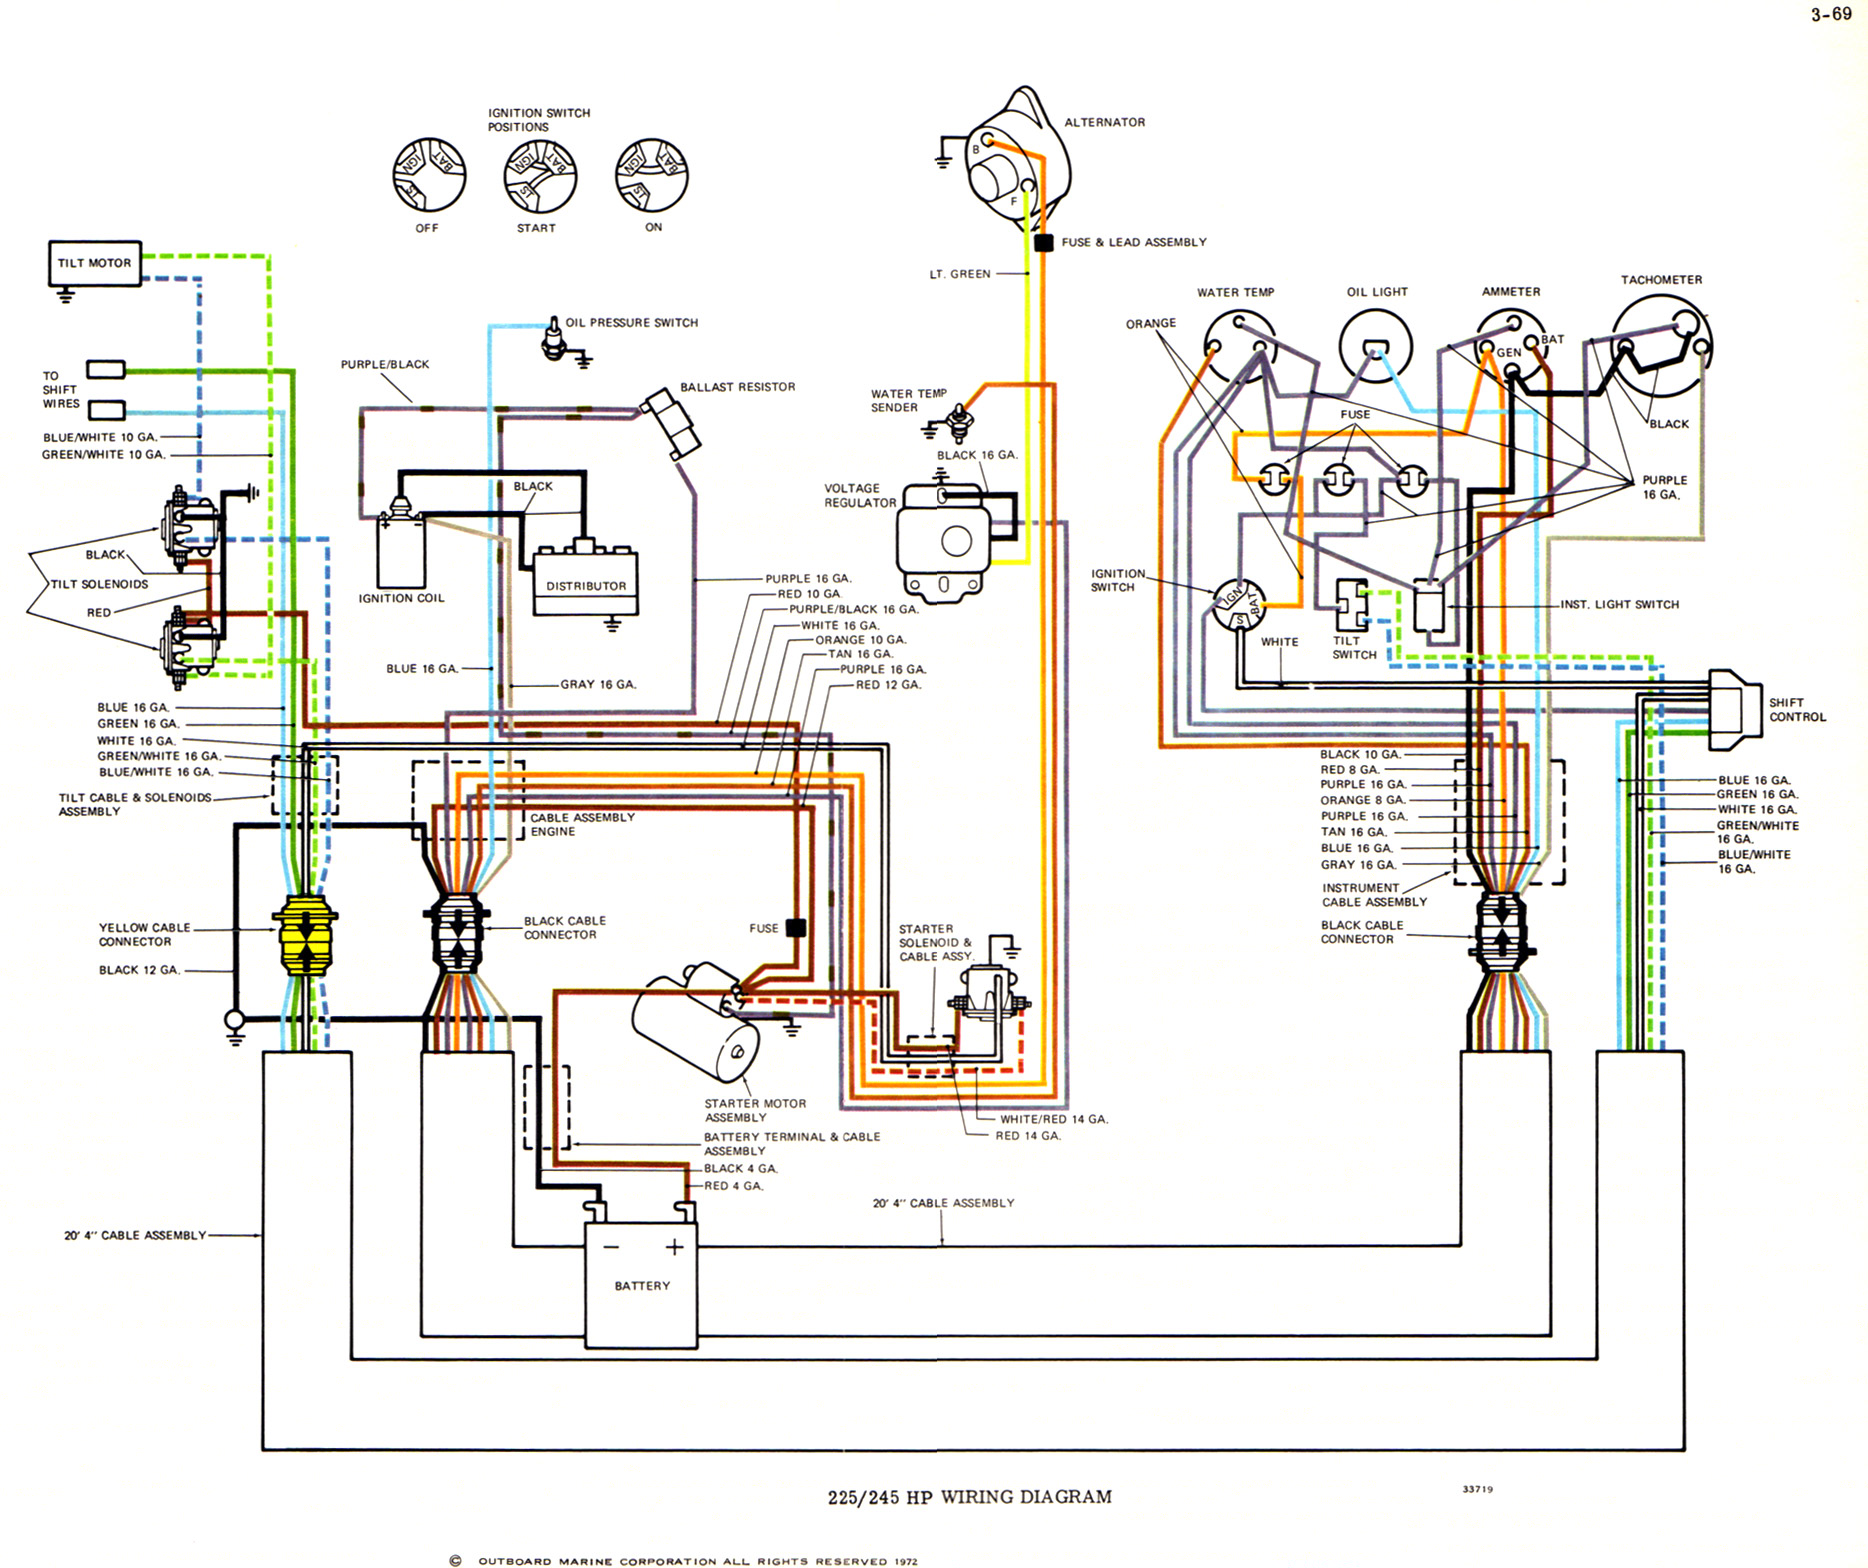 medium resolution of omc wiring diagrams simple wiring schema 12 volt switch wiring diagram omc trolling motor wiring diagram free picture